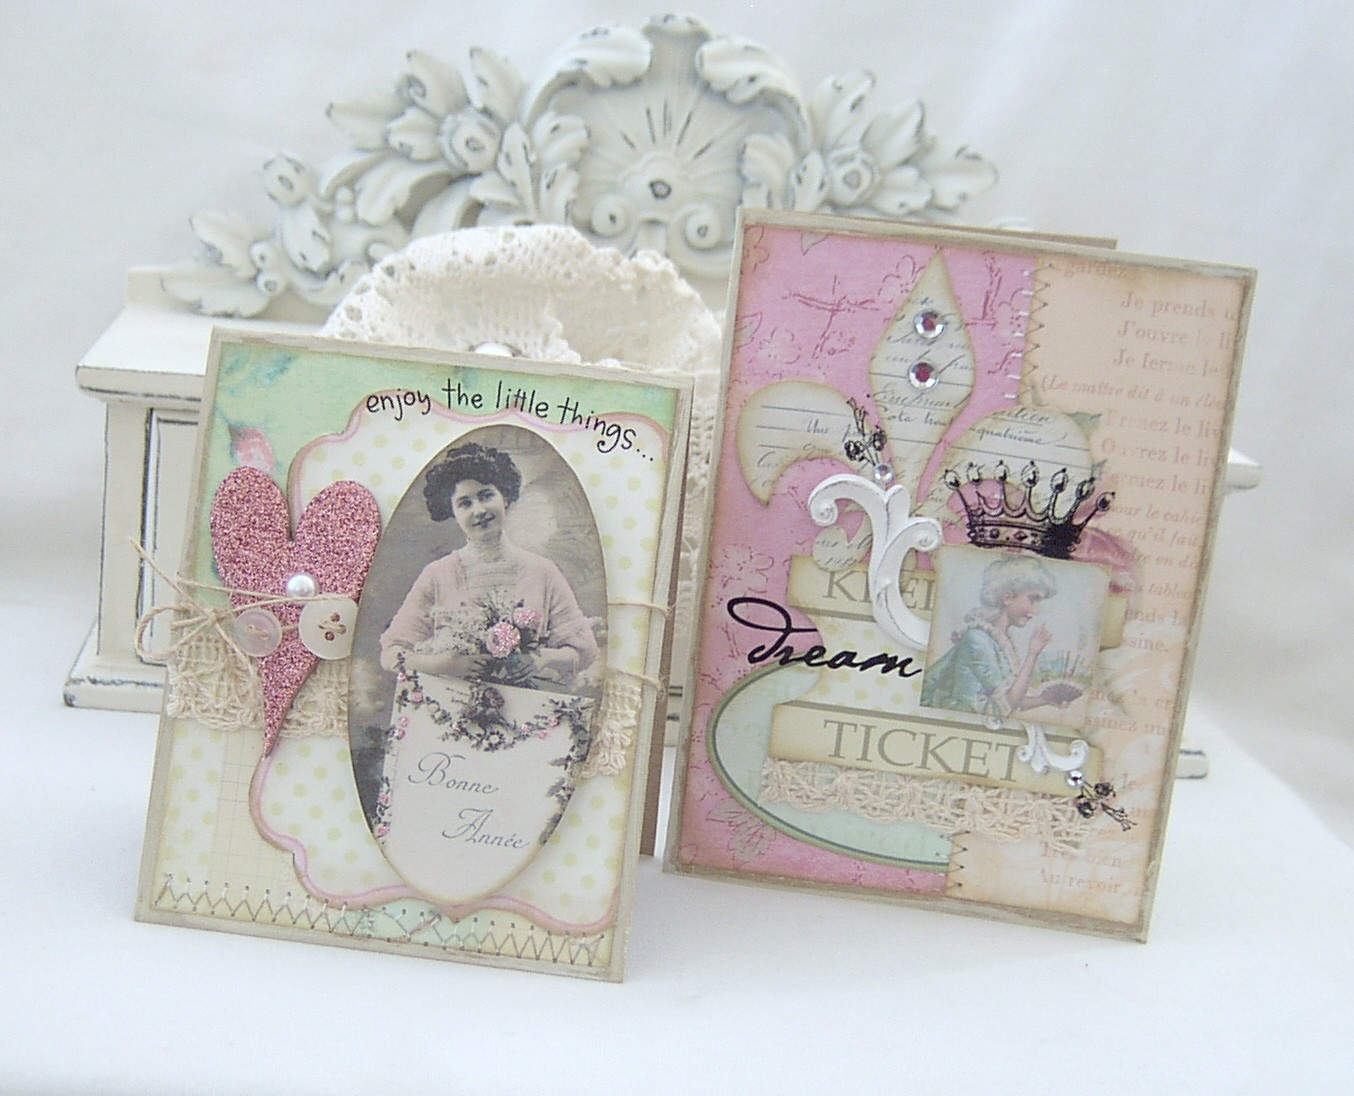 Meliphillips_vpcards_view1